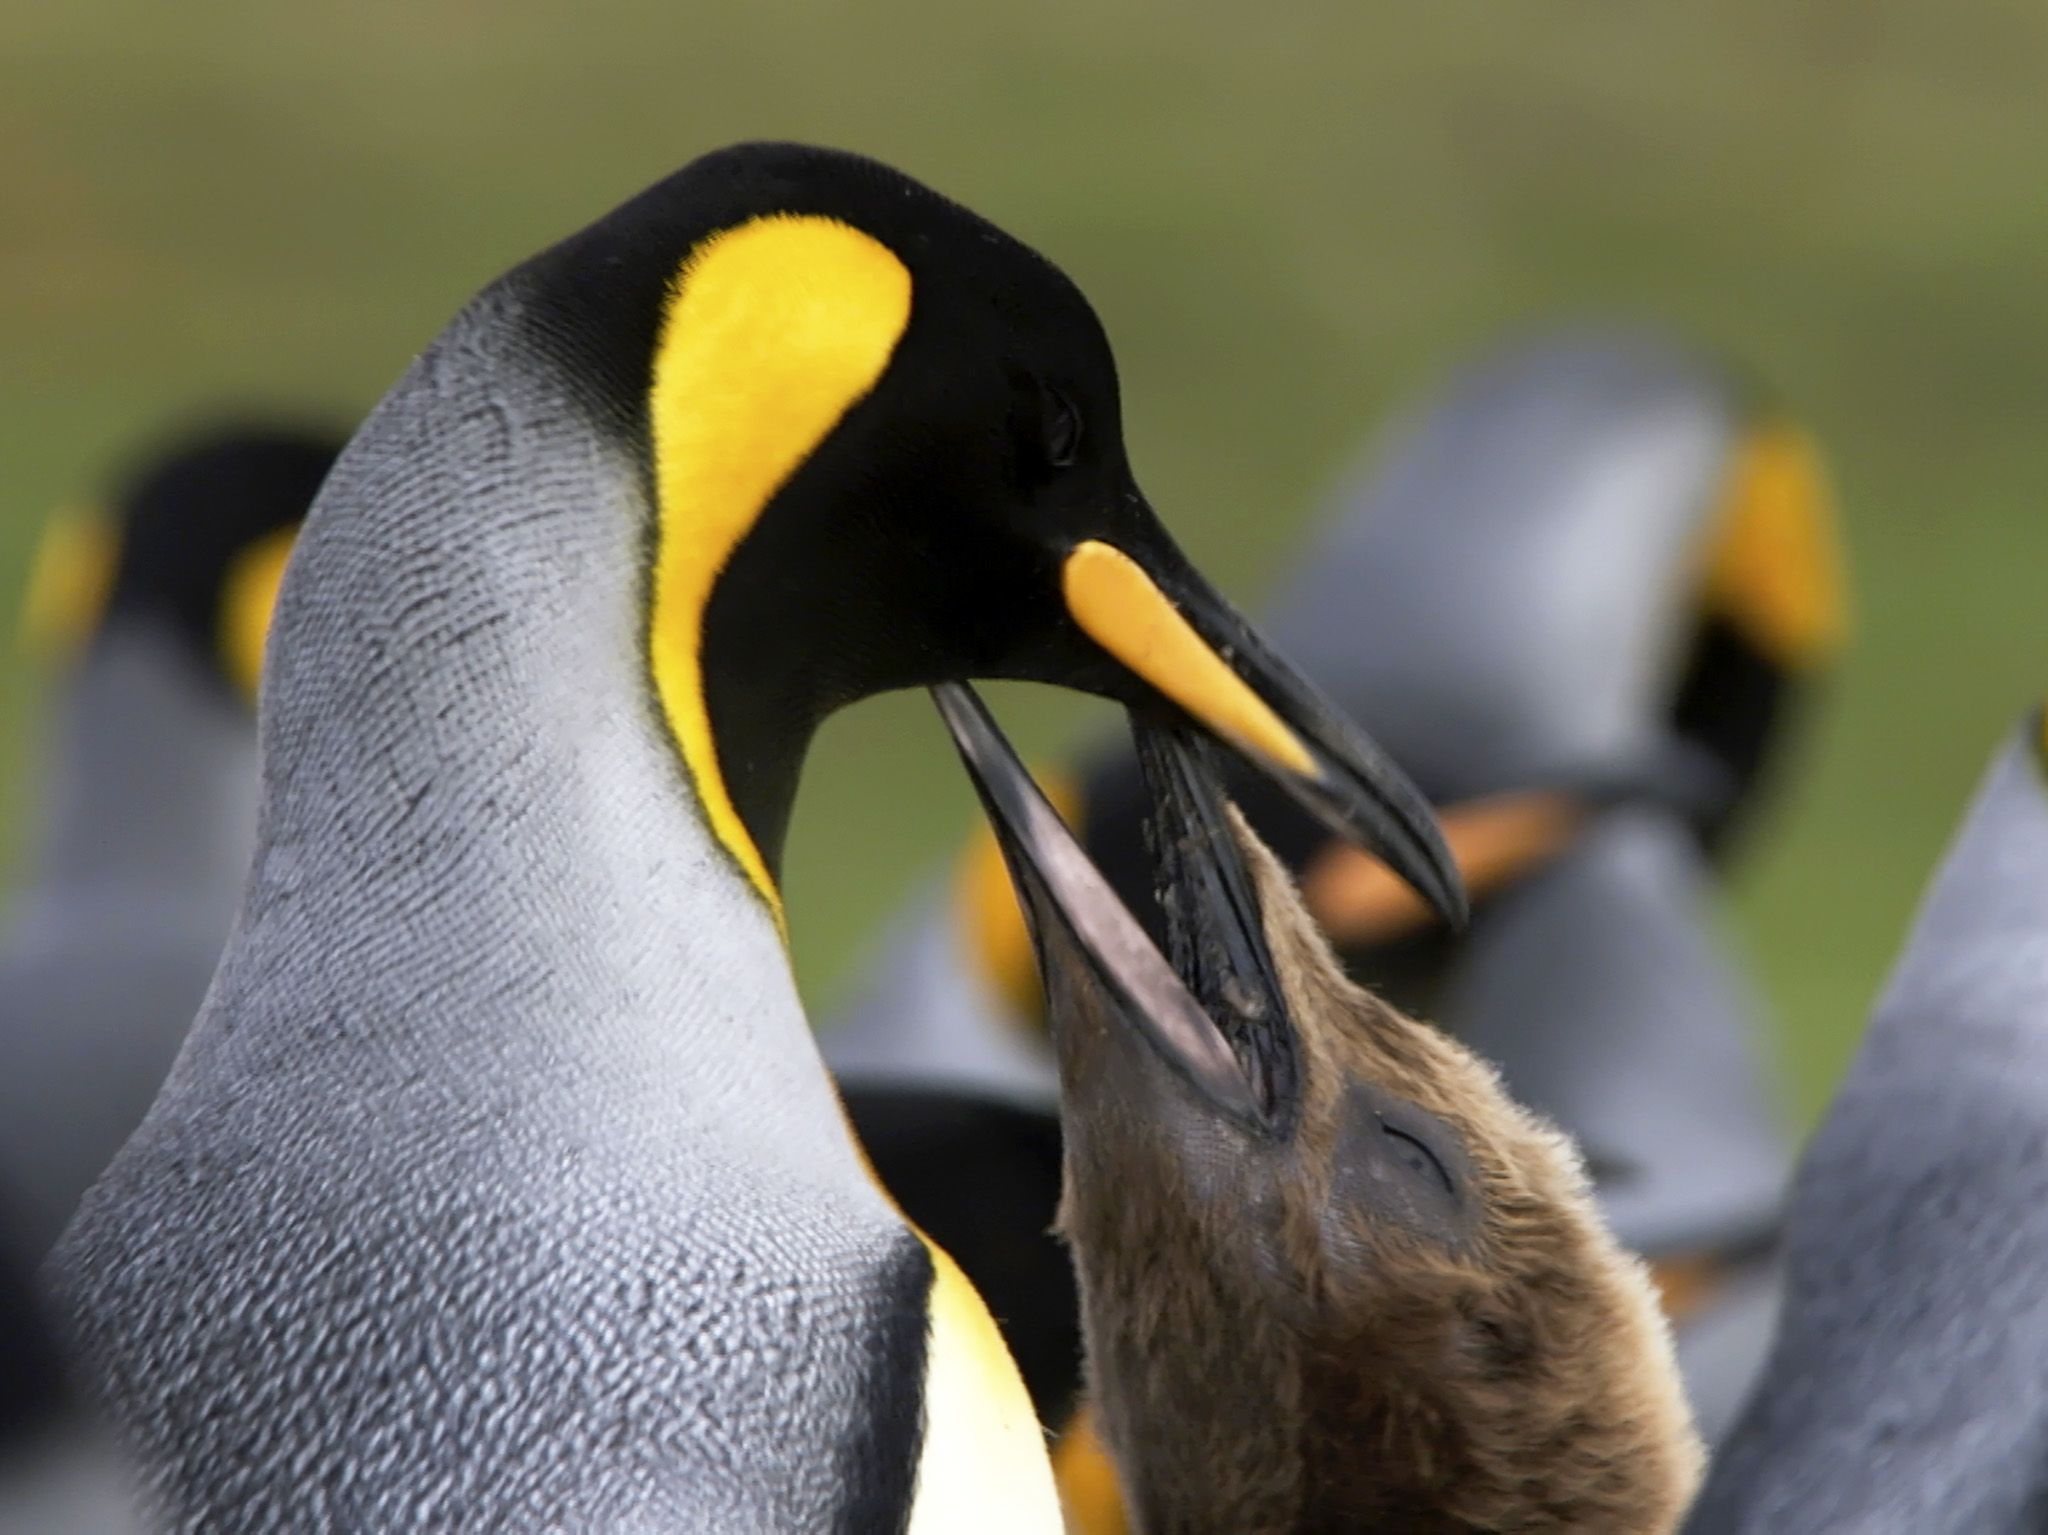 Tierra Del Fuego, Chile:  Young King Penguin begging for food. This image is from Wild Chile. [Photo of the day - May 2018]